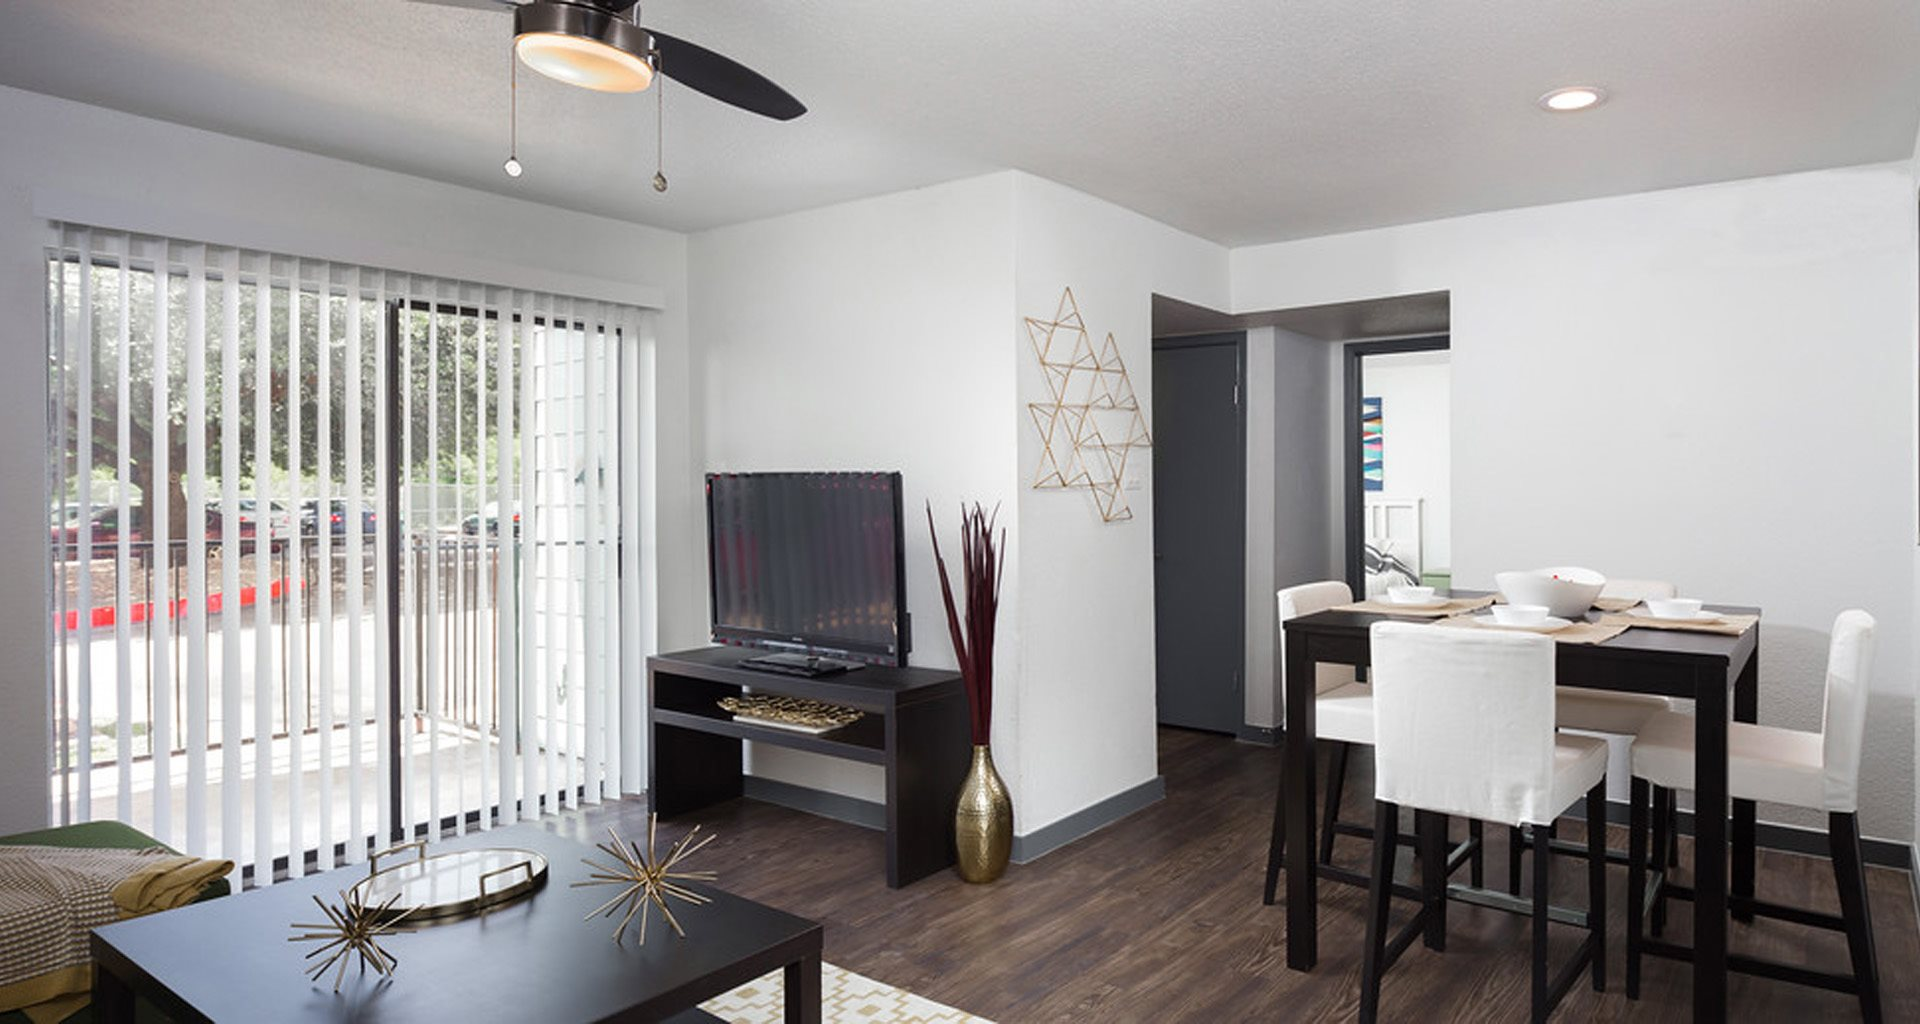 The Ivy | Apartments in Austin, TX